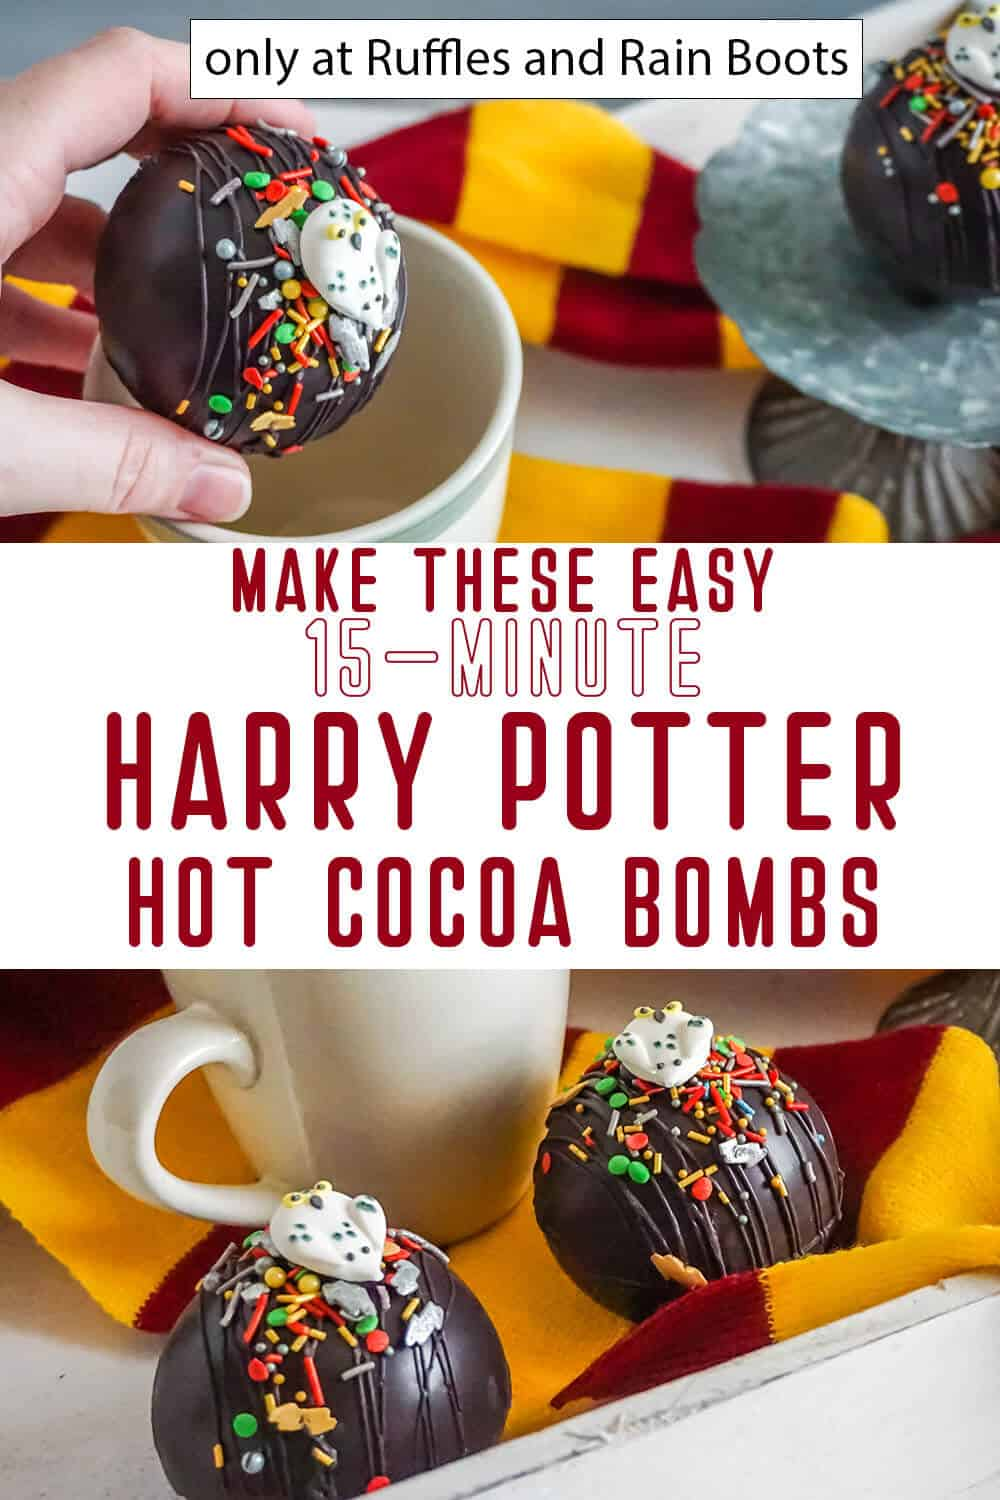 photo collage of harry potter hot chocolate bombs with text which reads make these easy 15-minute harry potter hot cocoa bombs